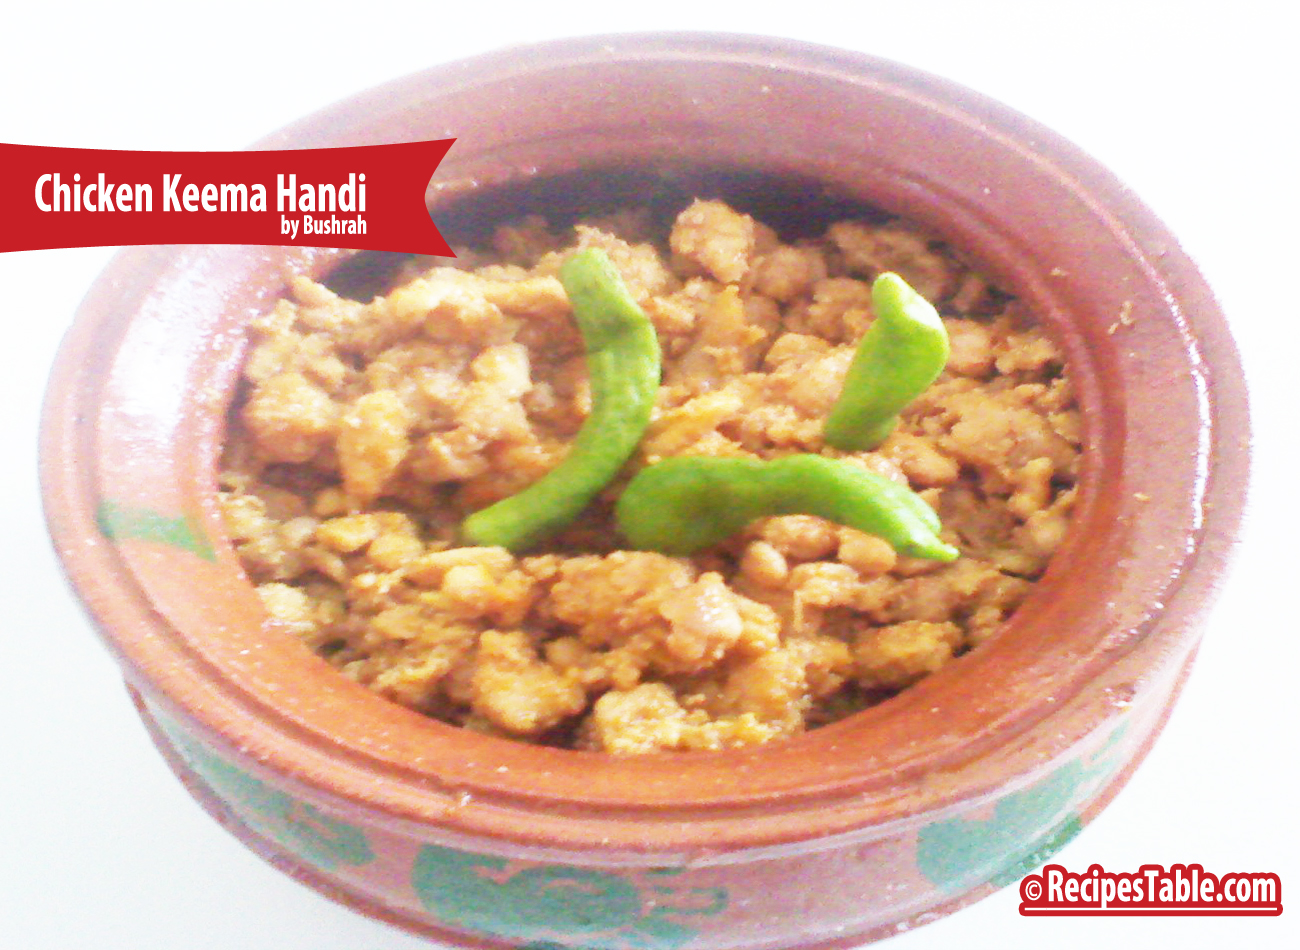 Recipe: Chicken Keema Handi